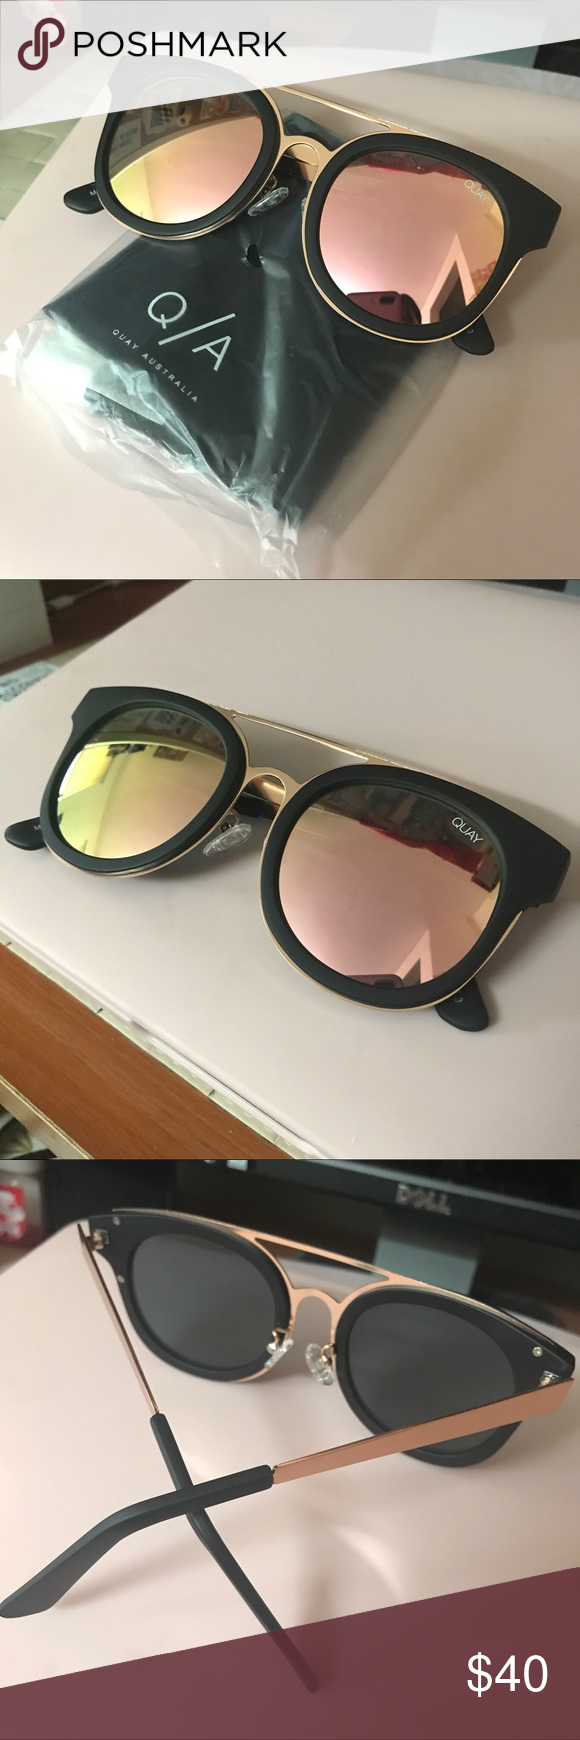 aaa5b060830 Comes with all original packaging. Have never been worn. Mirrored shades.  Color black pink gold. Quay Australia Accessories Sunglasses